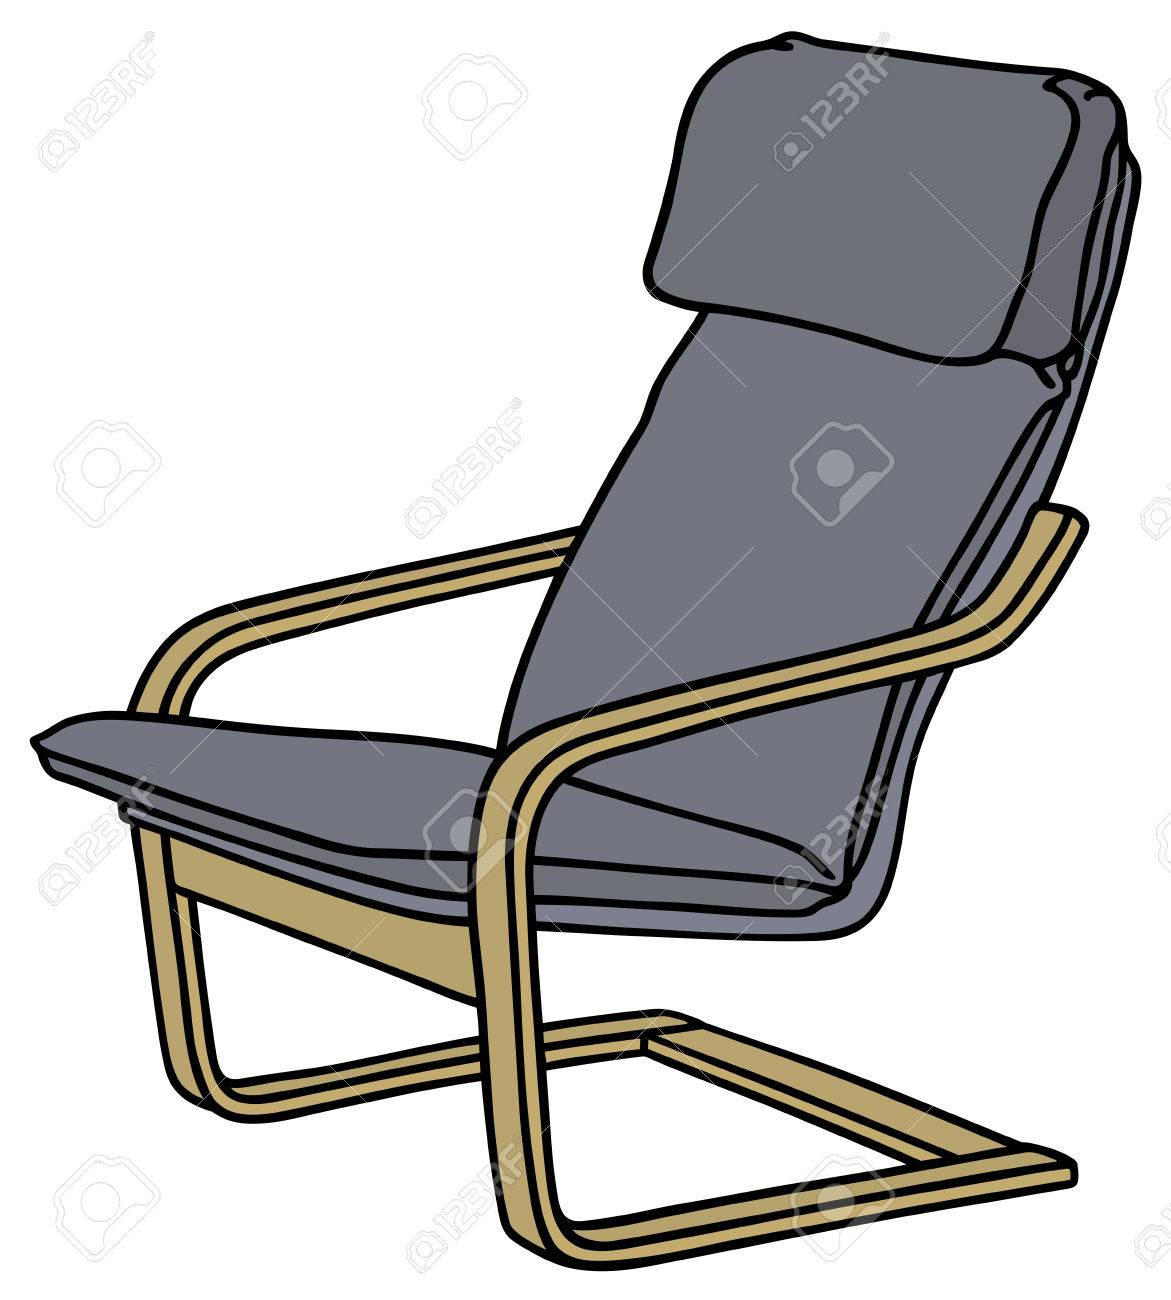 1171x1300 Hand Drawing Of A Wooden Armchair Royalty Free Cliparts, Vectors